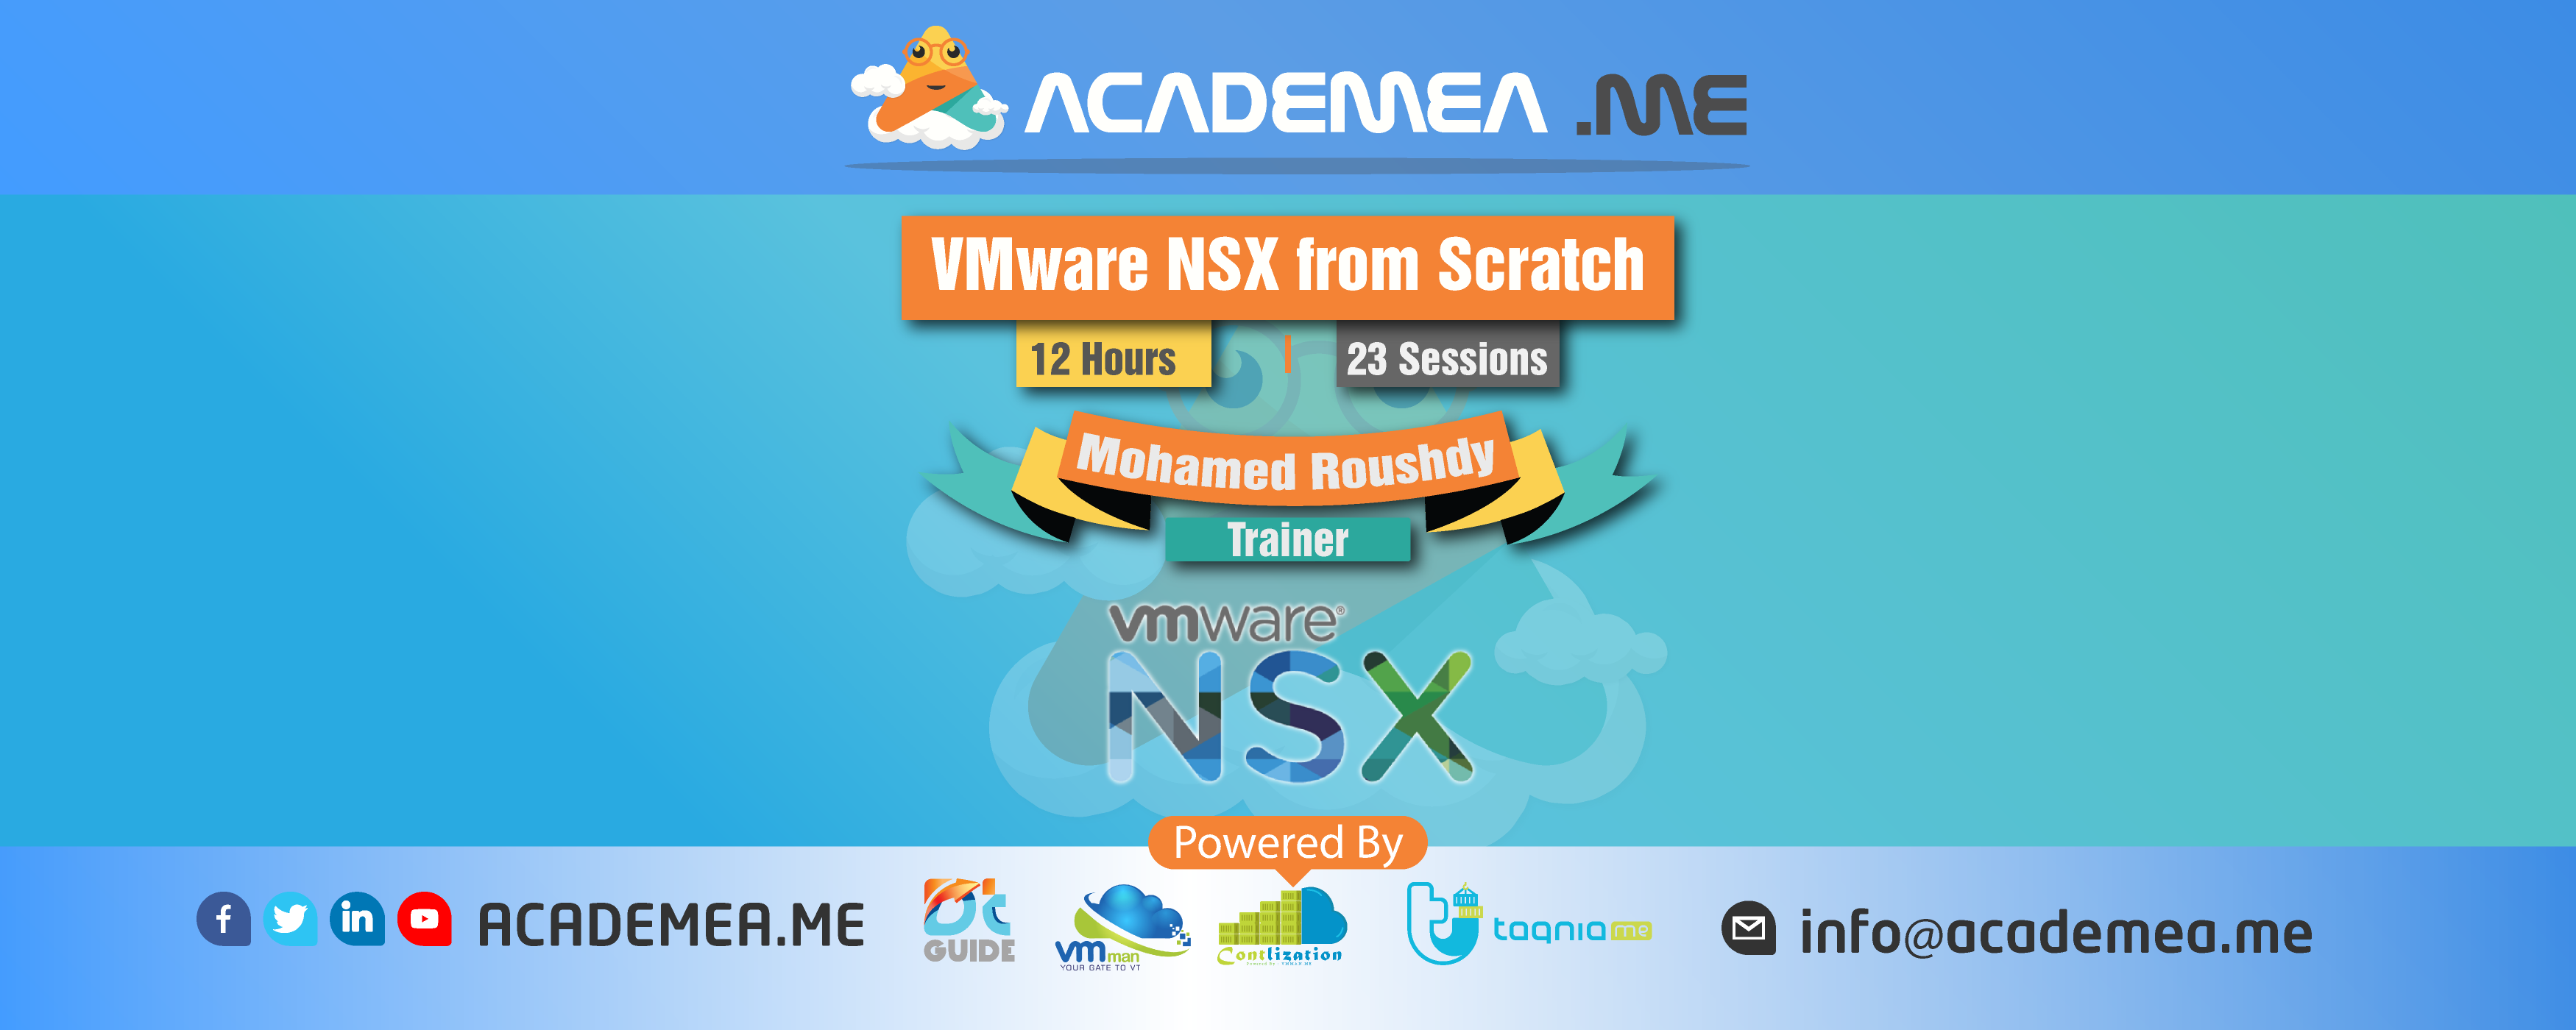 VMware NSX from Scratch